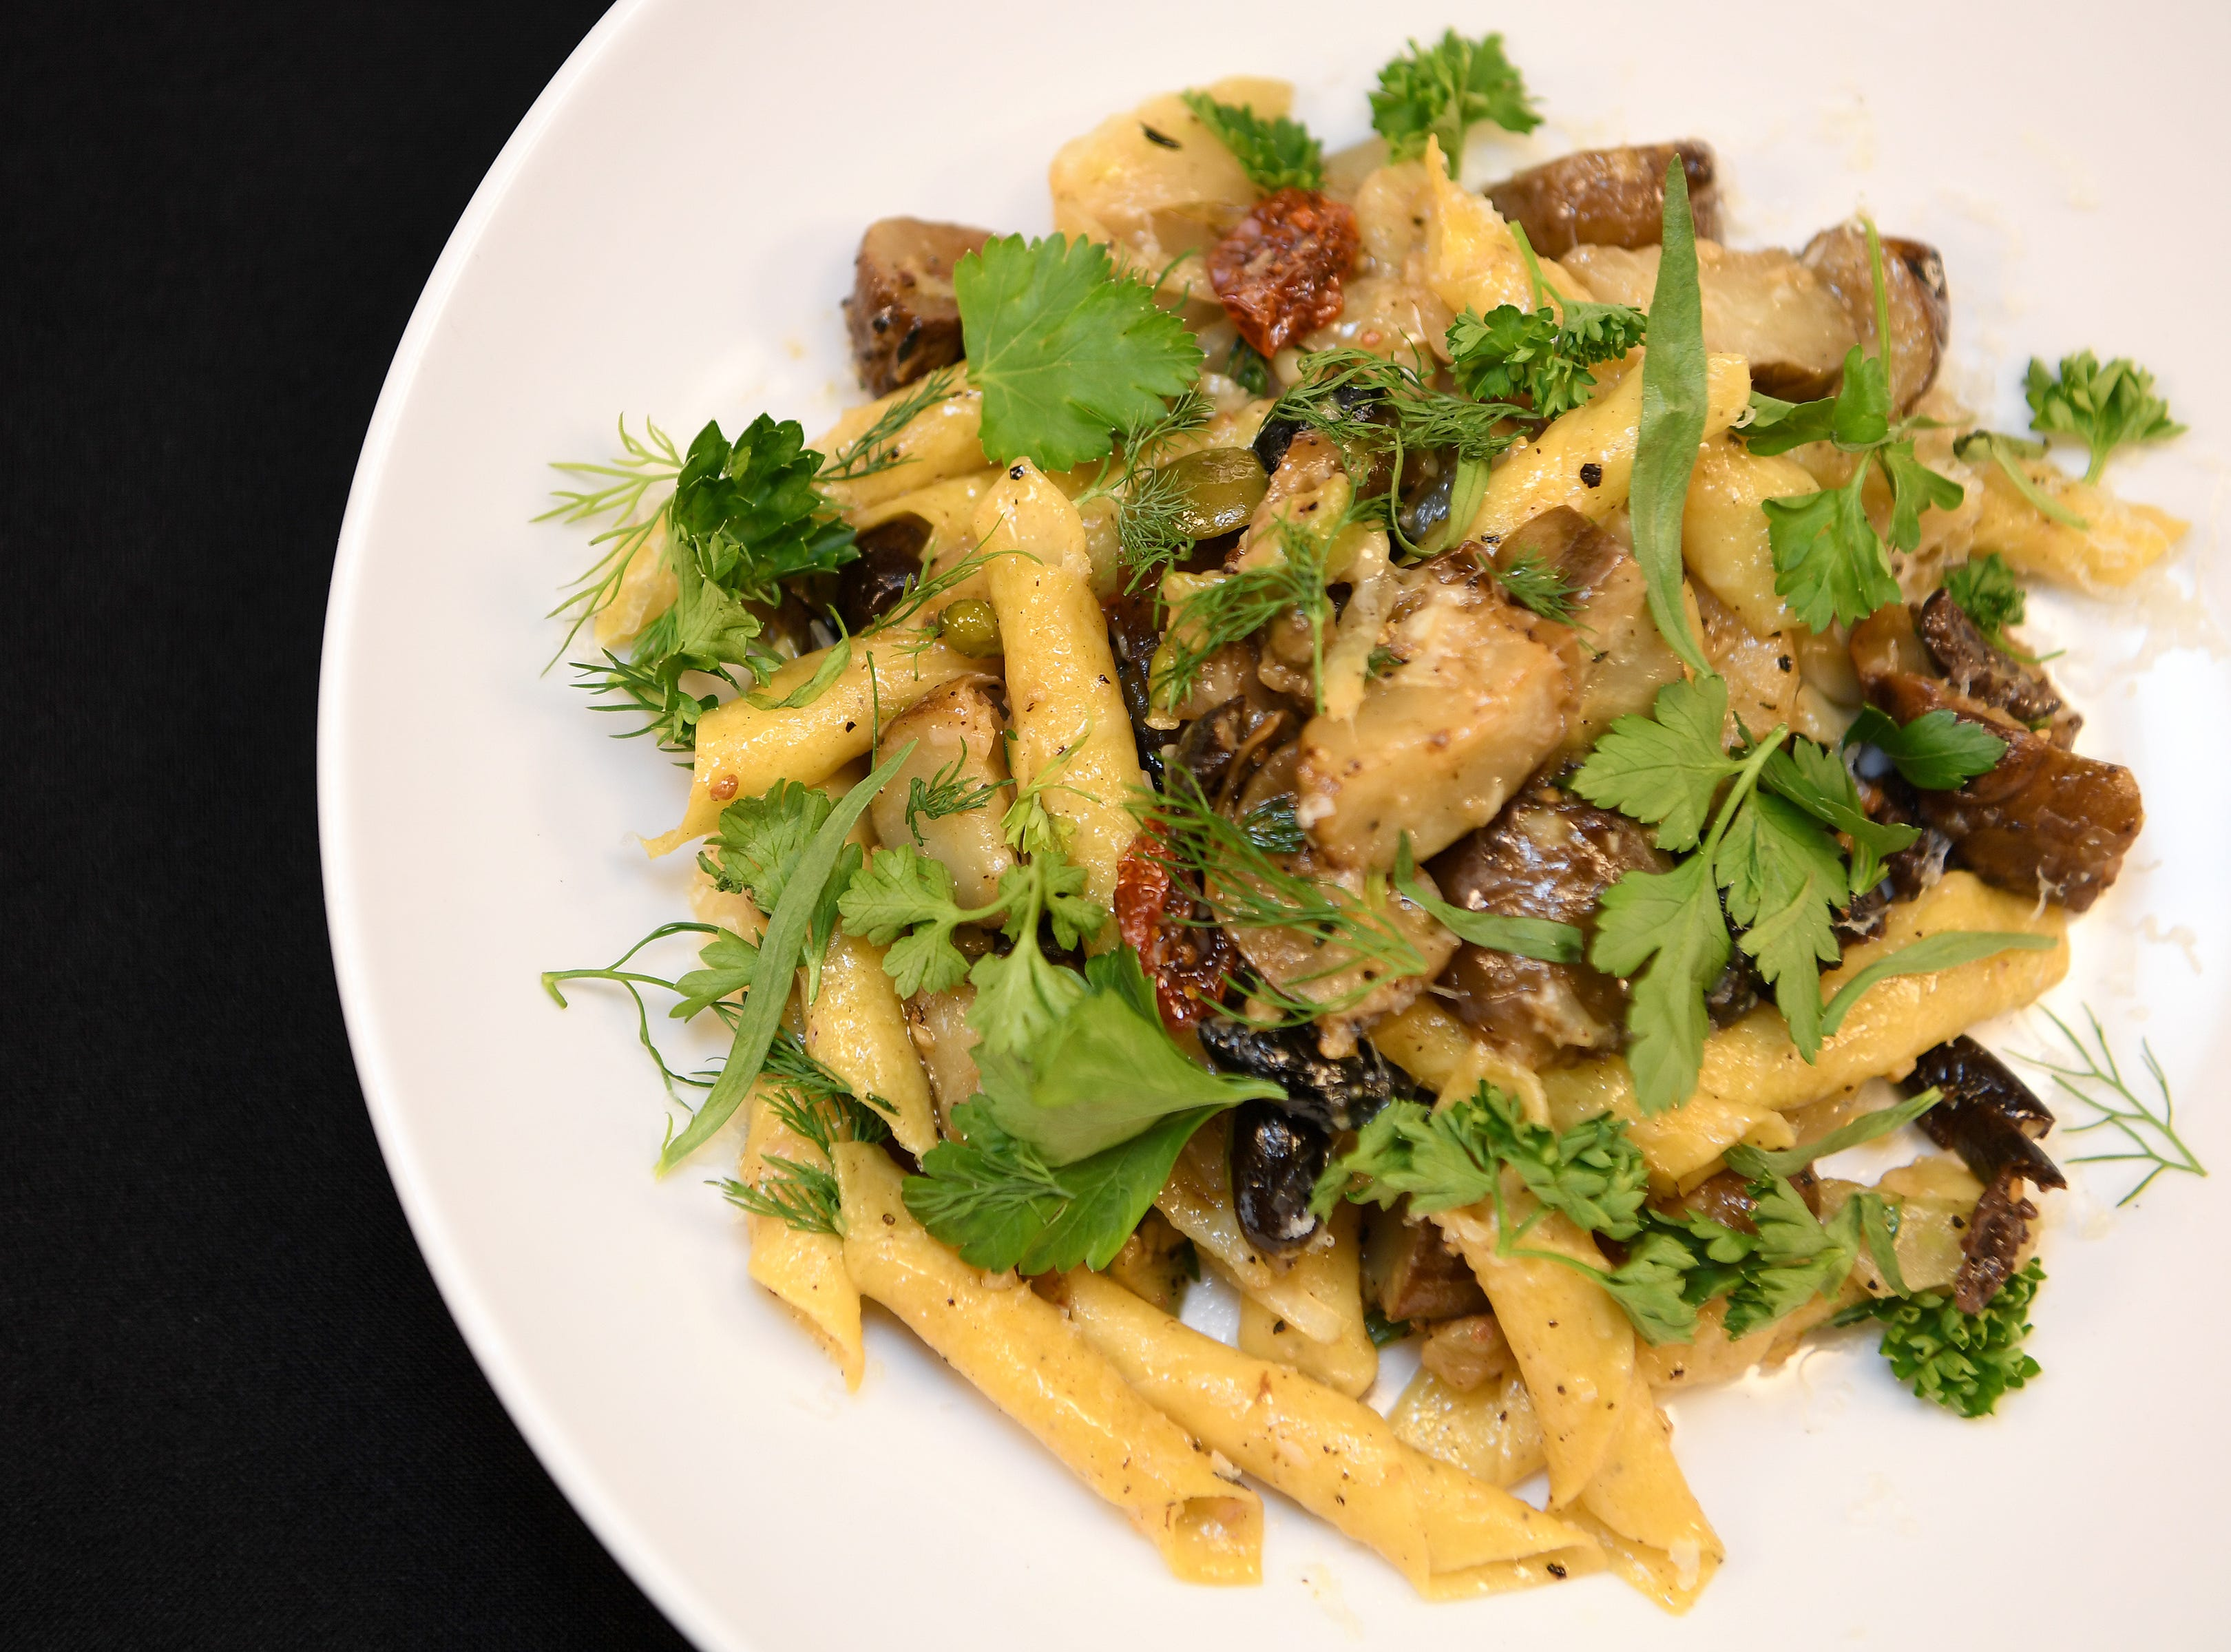 The garganelli pasta at Daphne at Twisted Laurel featured toasted fennel, tomato, caper, cracked olive, guanciale, sunchoke, pecorino and herbs.